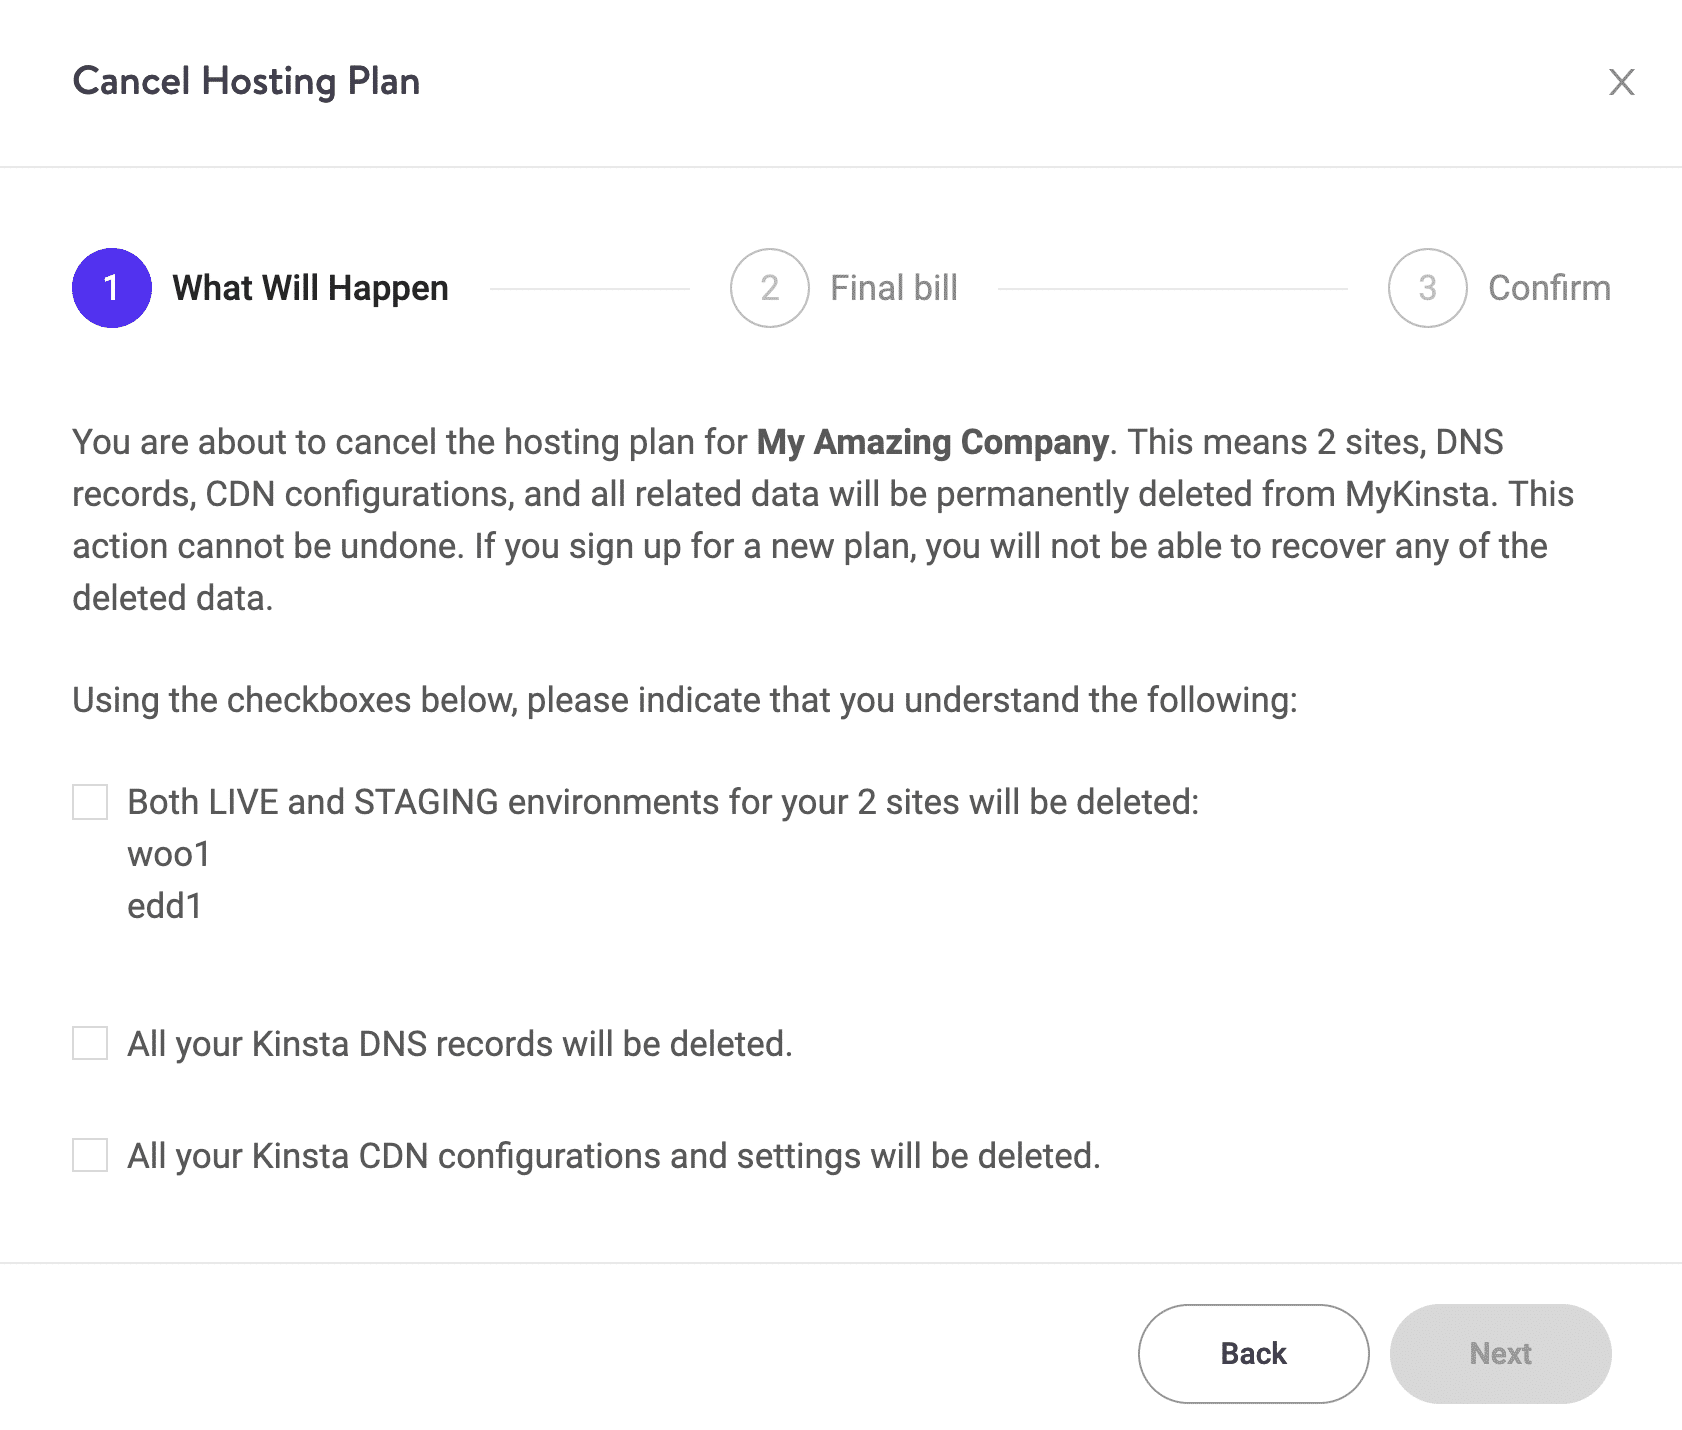 Cancel hosting plan